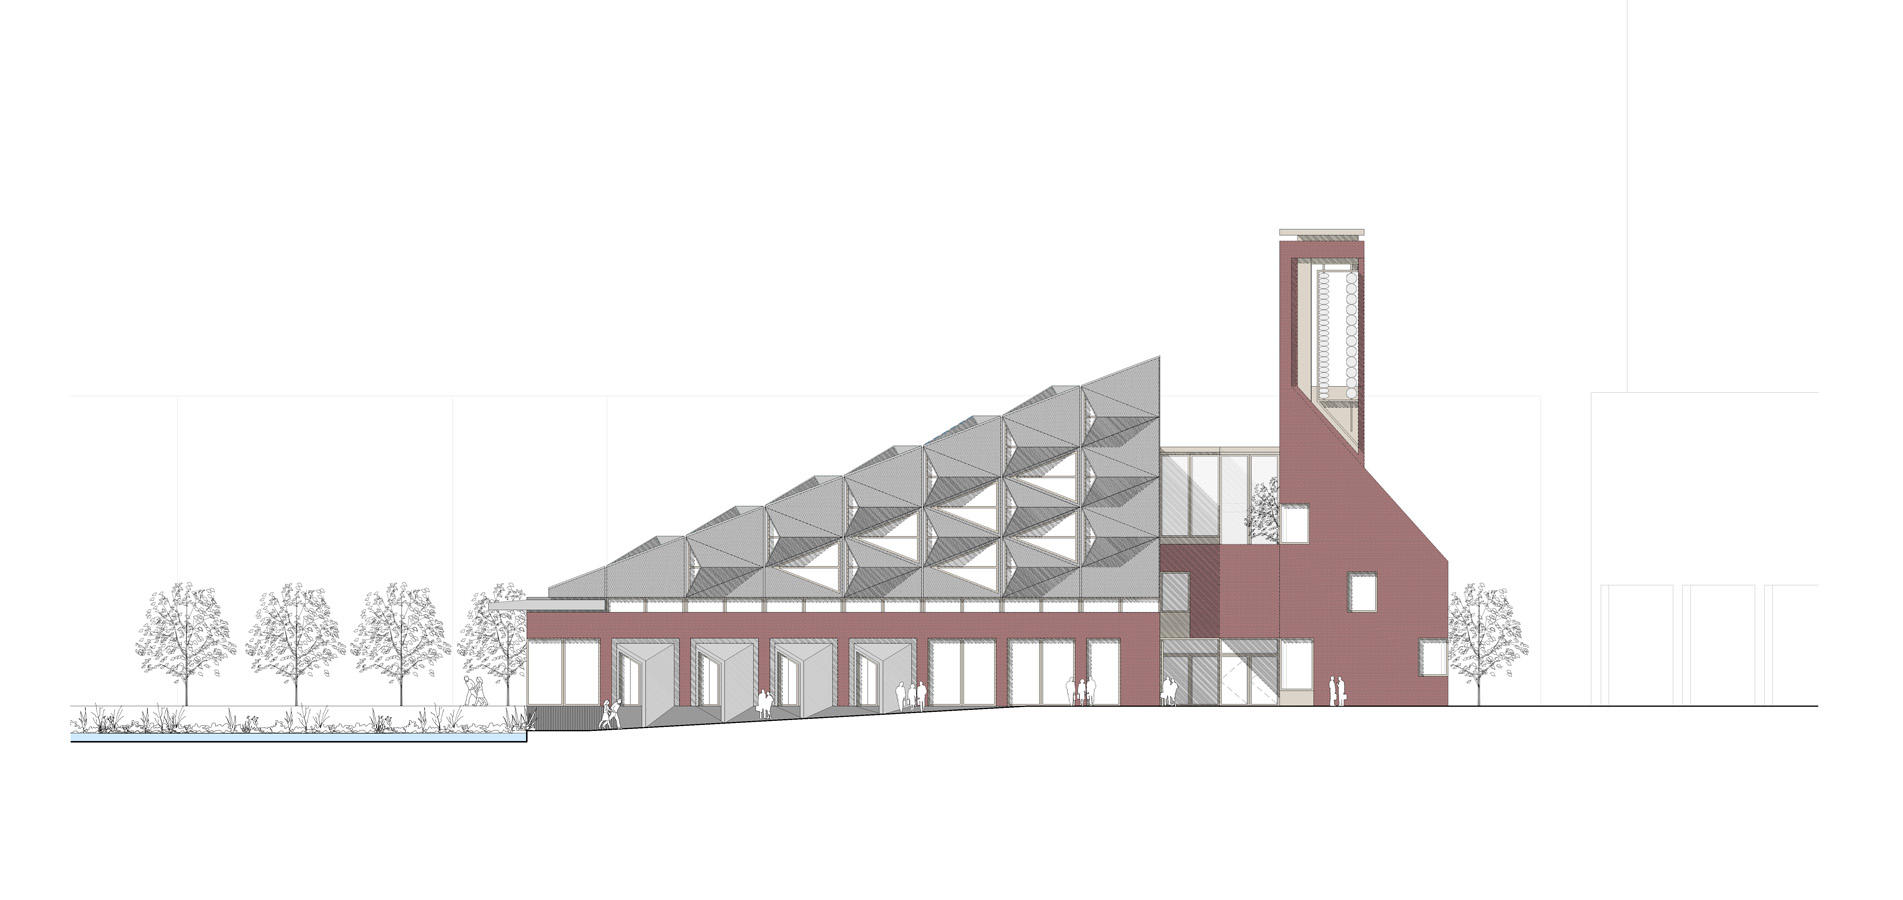 Elevation of the proposed new Southmere Village Library